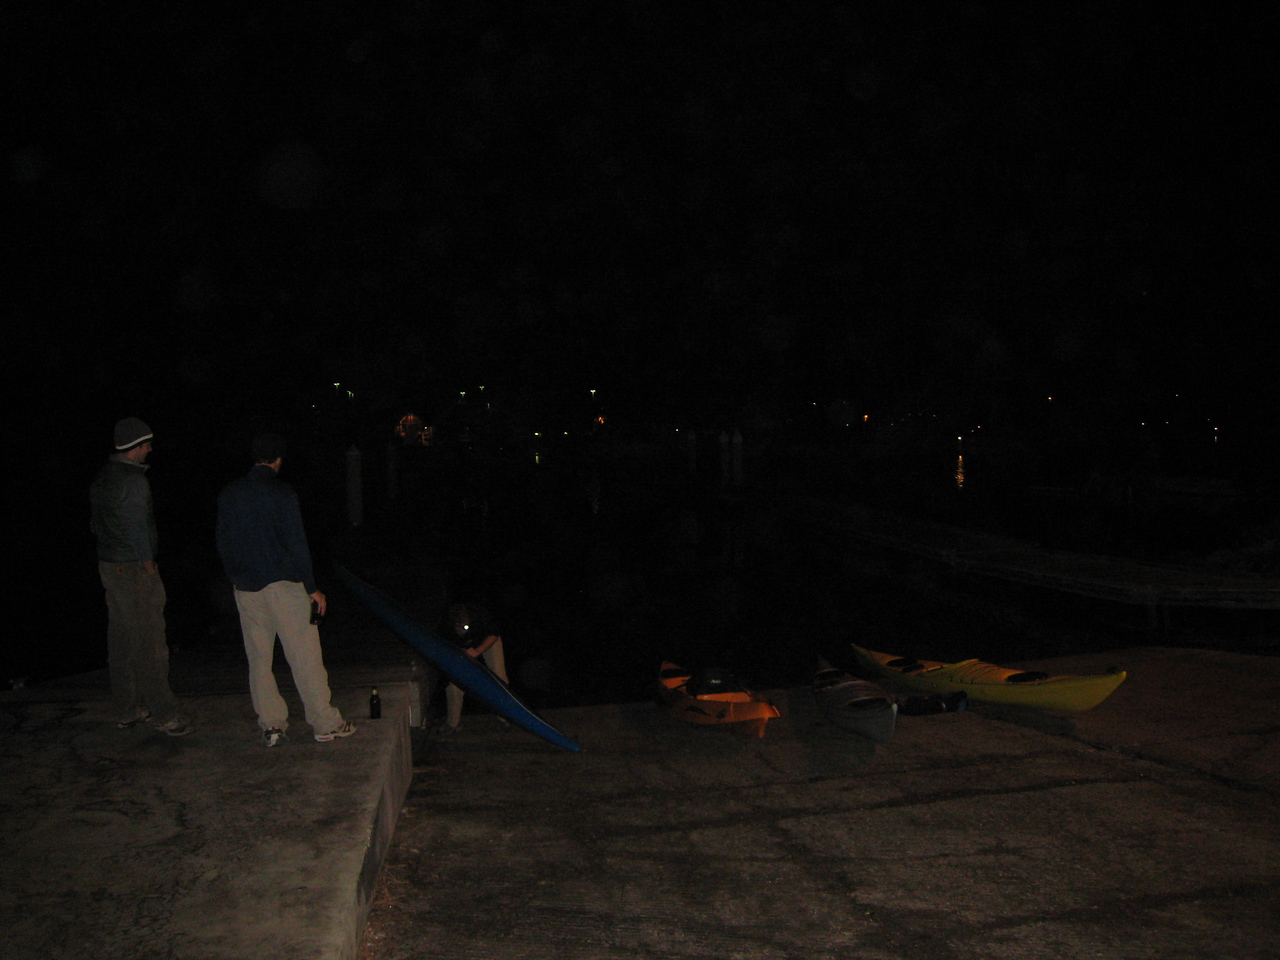 Putting in our boats.  Went out for about 2 hours in the moon/industrial complex light.  Alex and I saw a barn owl... Funk got chased by an alligator.  Lot's of birds and critters out on Bair Island.